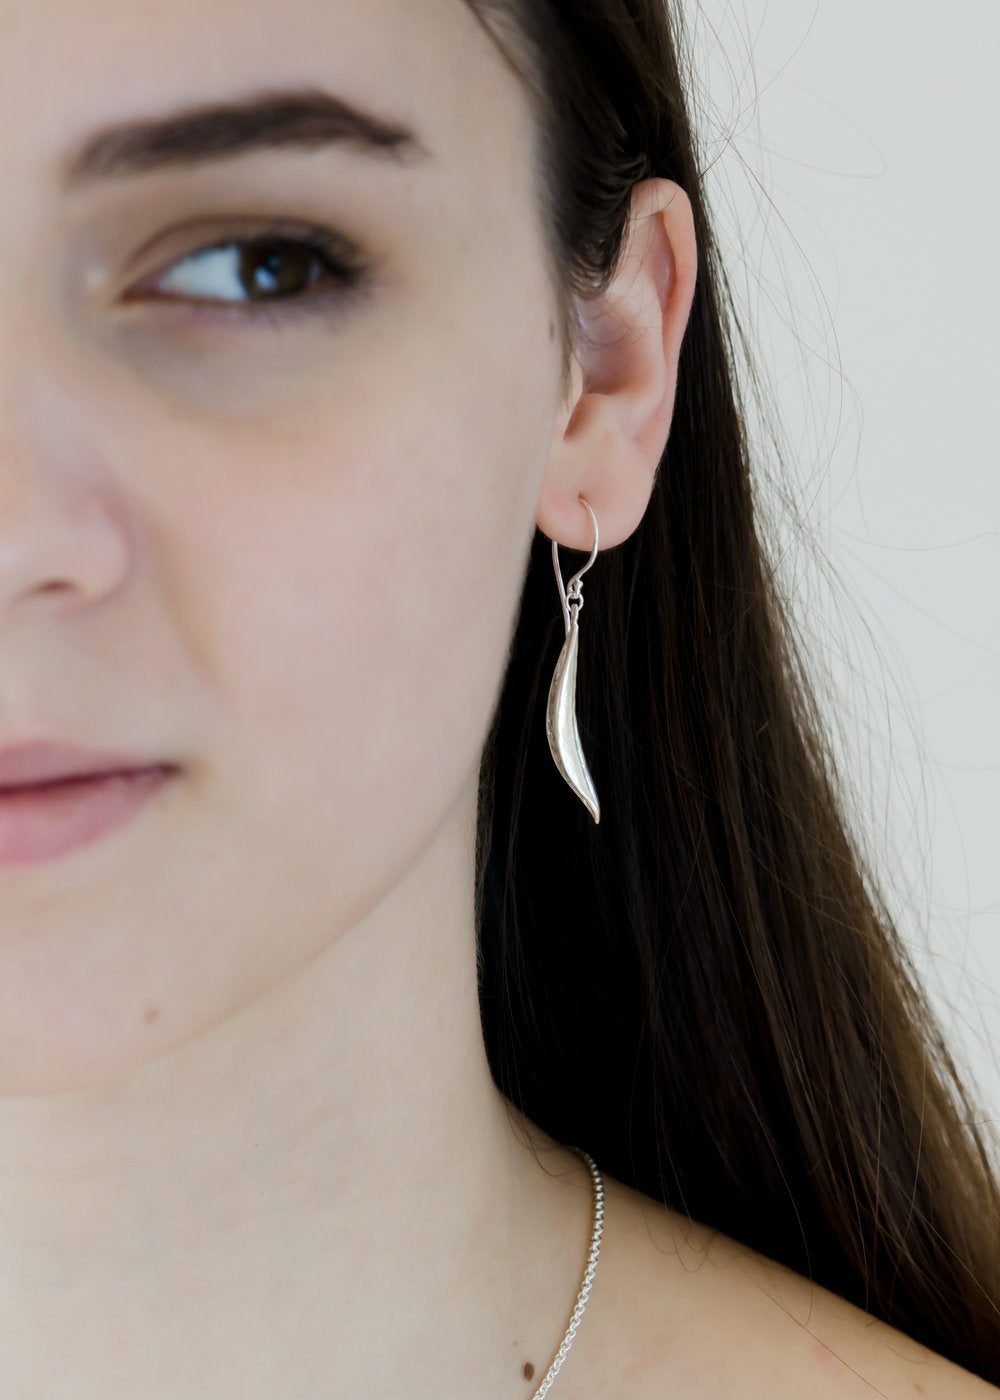 Win these earrings! Comment your gratitude below